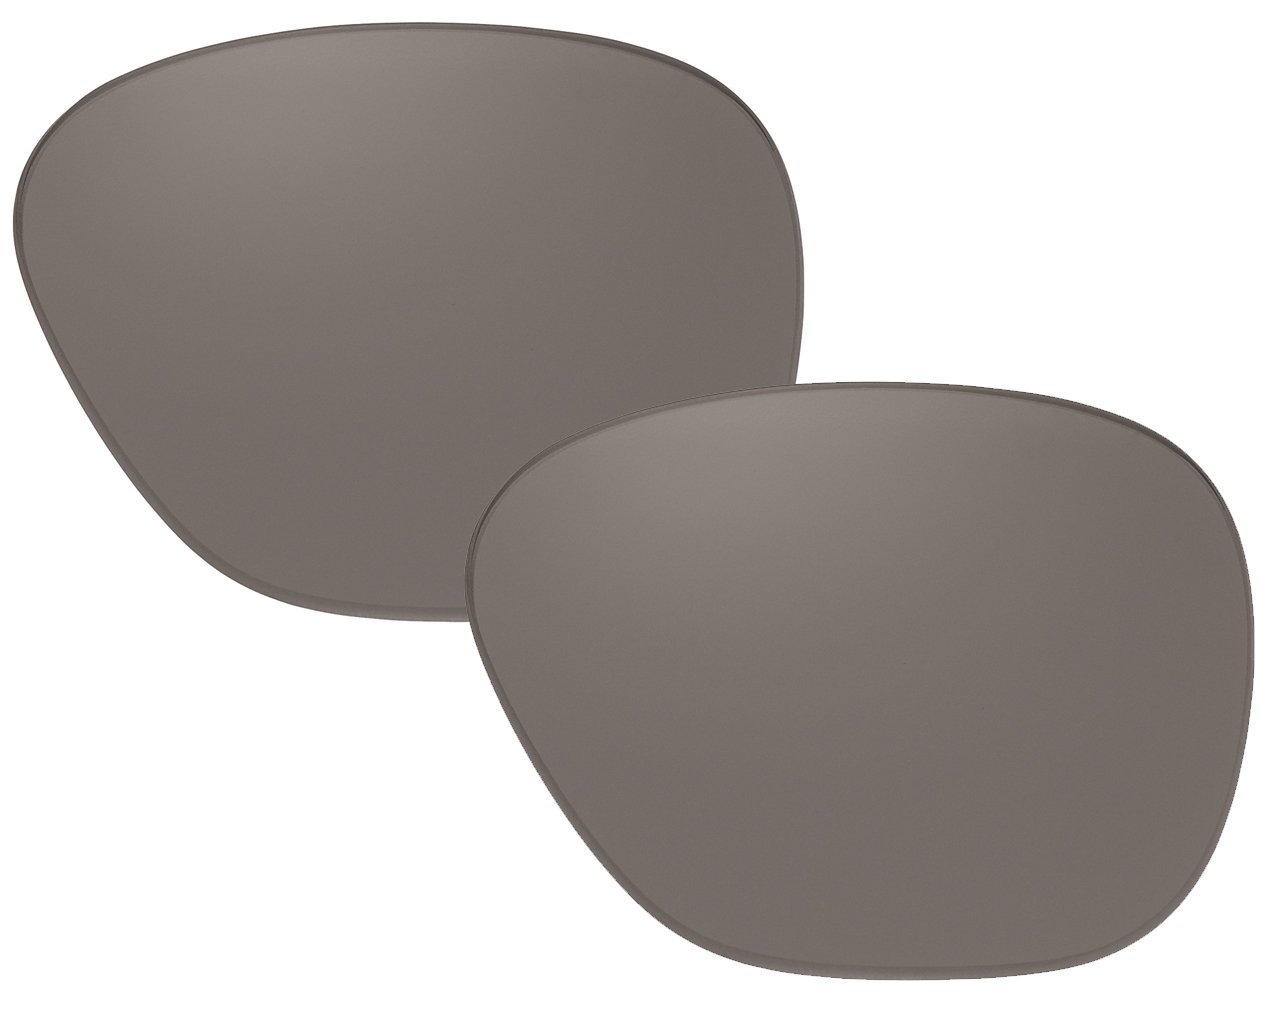 Suncloud Optics Poptown Authentic Replacement Polarized Lenses (Grey Lens)